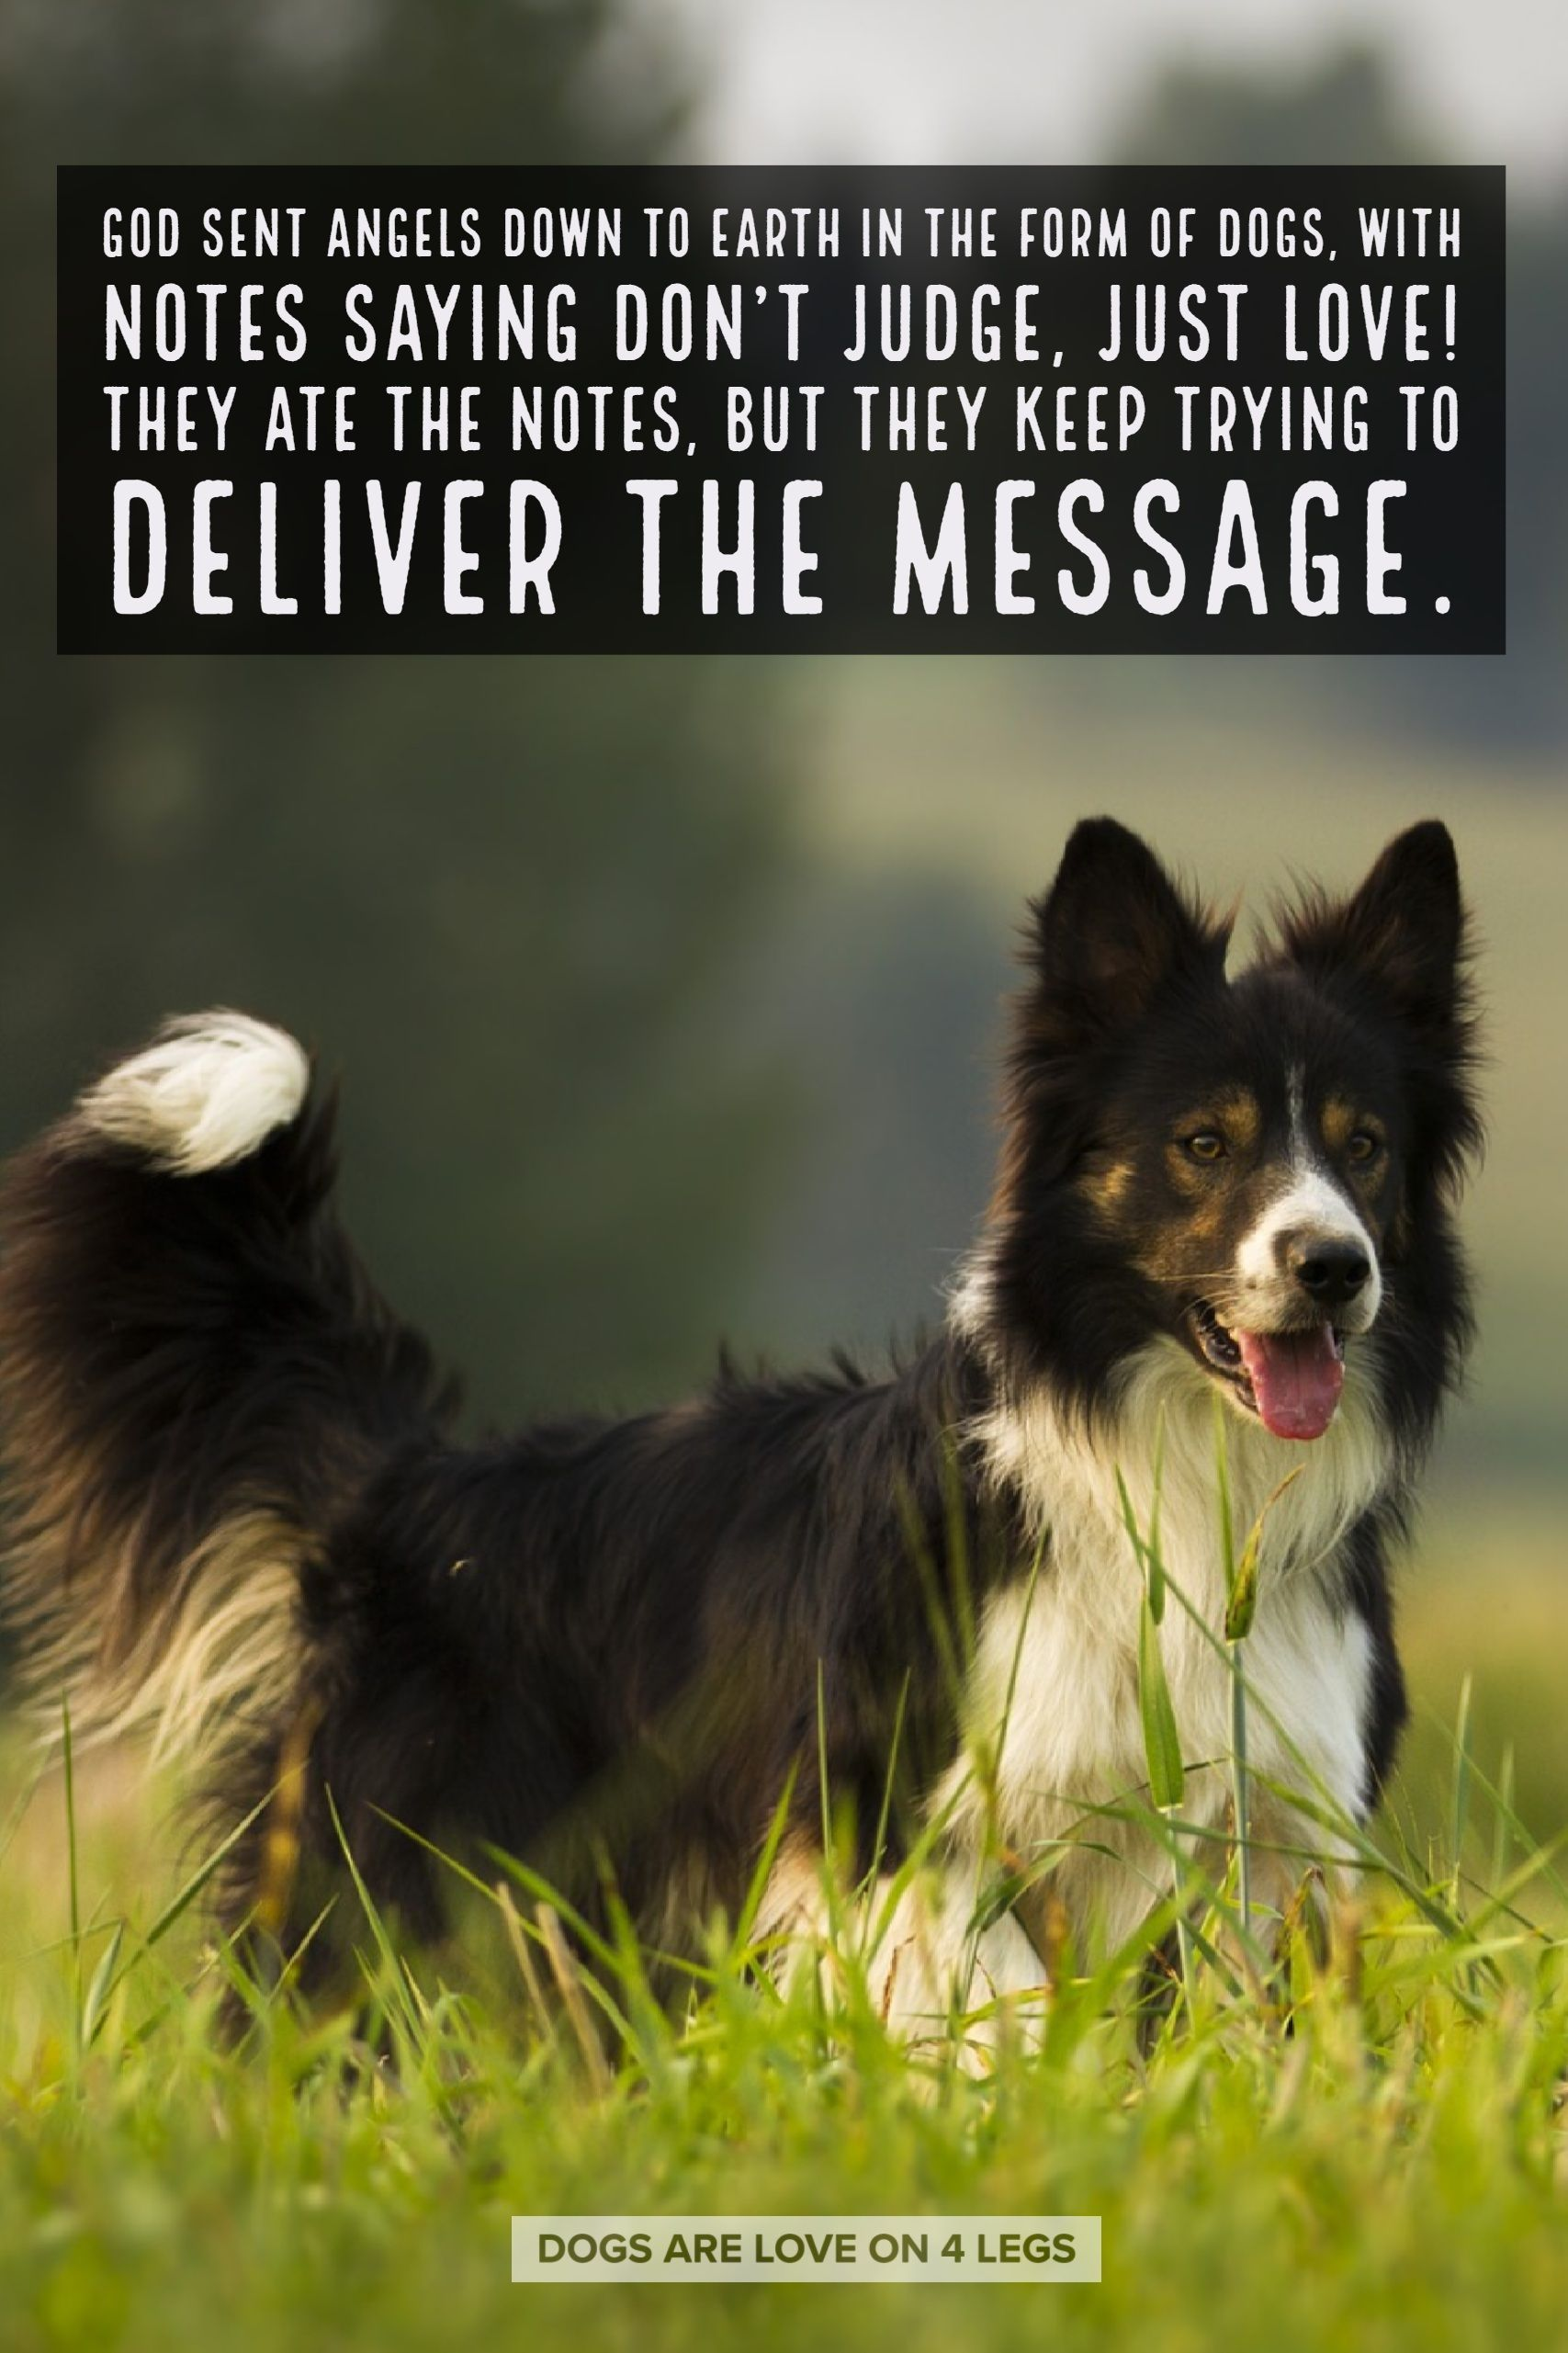 Dog Quote God Sent Angels Down To Earth Dog Dog Quotes Inspirational Quotes Funny Quotes Life Quot Dog Quotes Dog Quotes Inspirational Dog Quotes Funny